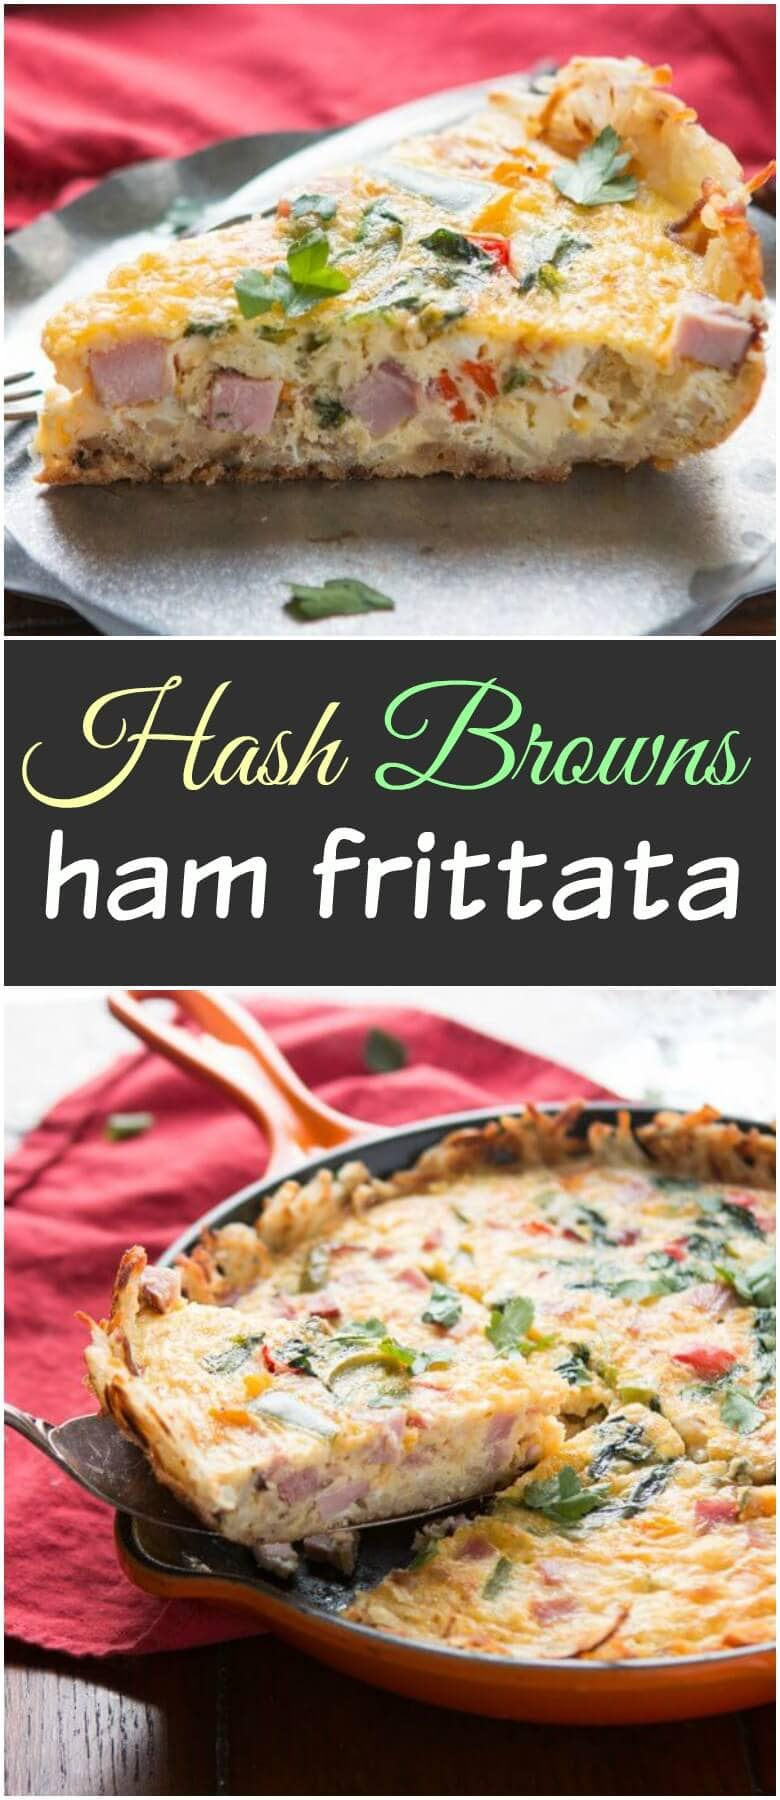 Golden hash browns make a great crust for this hash browns ham frittata! Serve as is or with hot sauce for a spicy little pop! low-carb